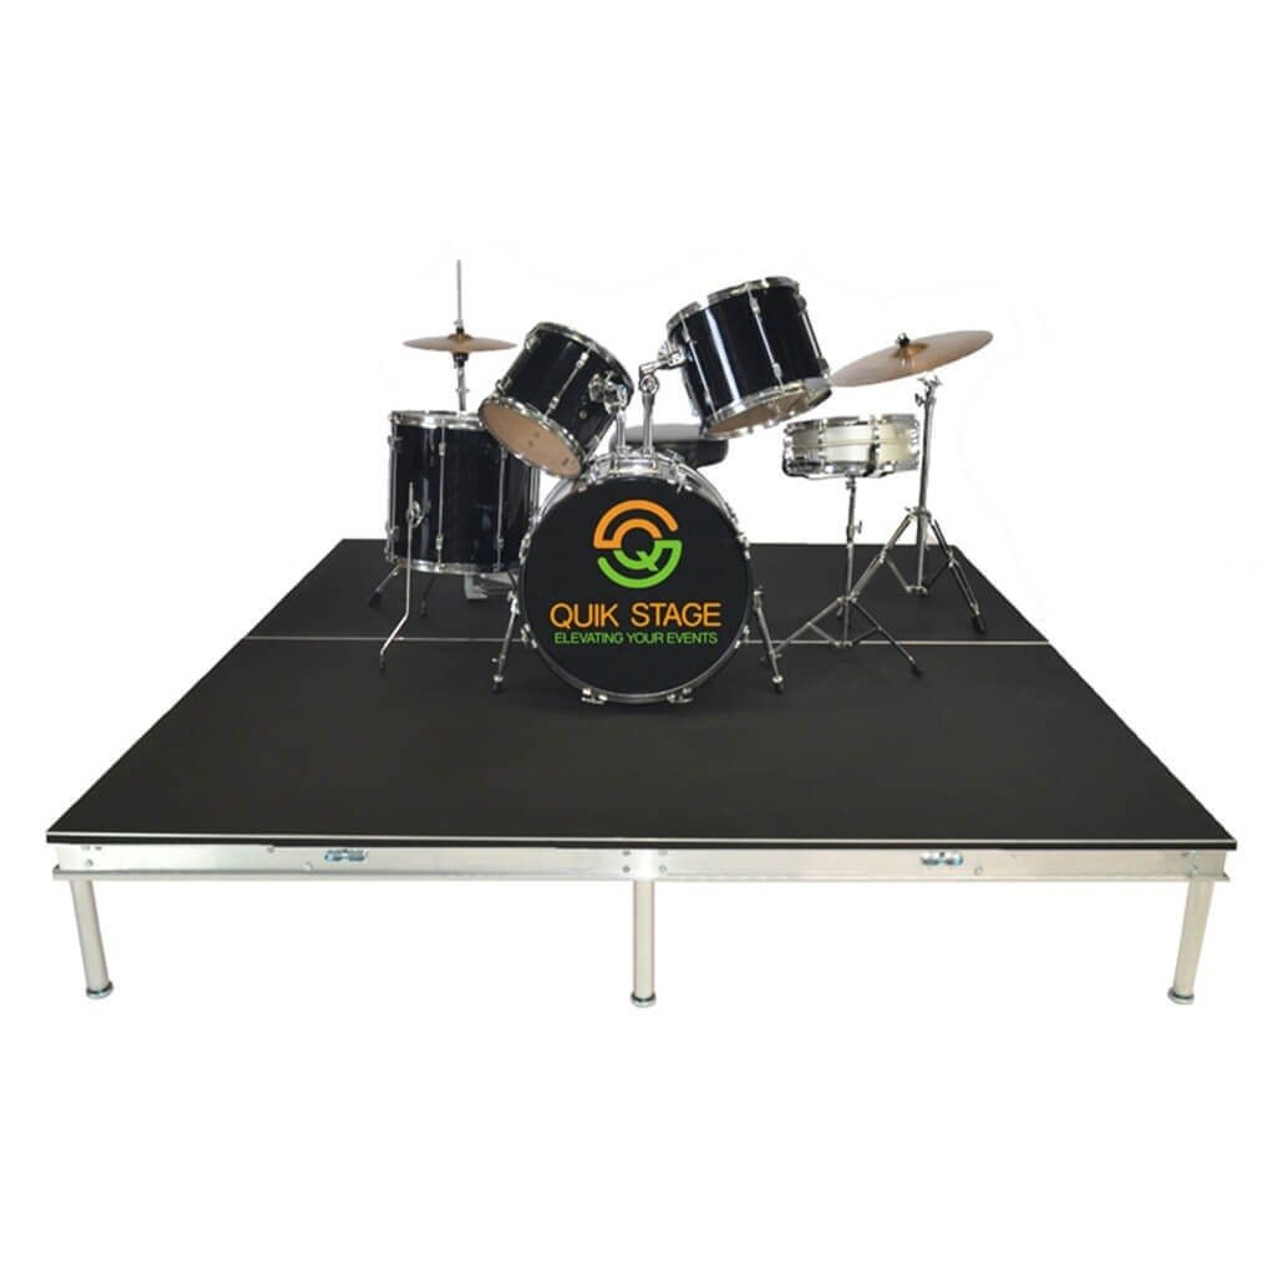 Quik Stage 8' x 12' High Portable Stage Package with Black Polyvinyl Non-Skid Surface. Additional Heights and Surfaces Available - Drum Riser without skirting